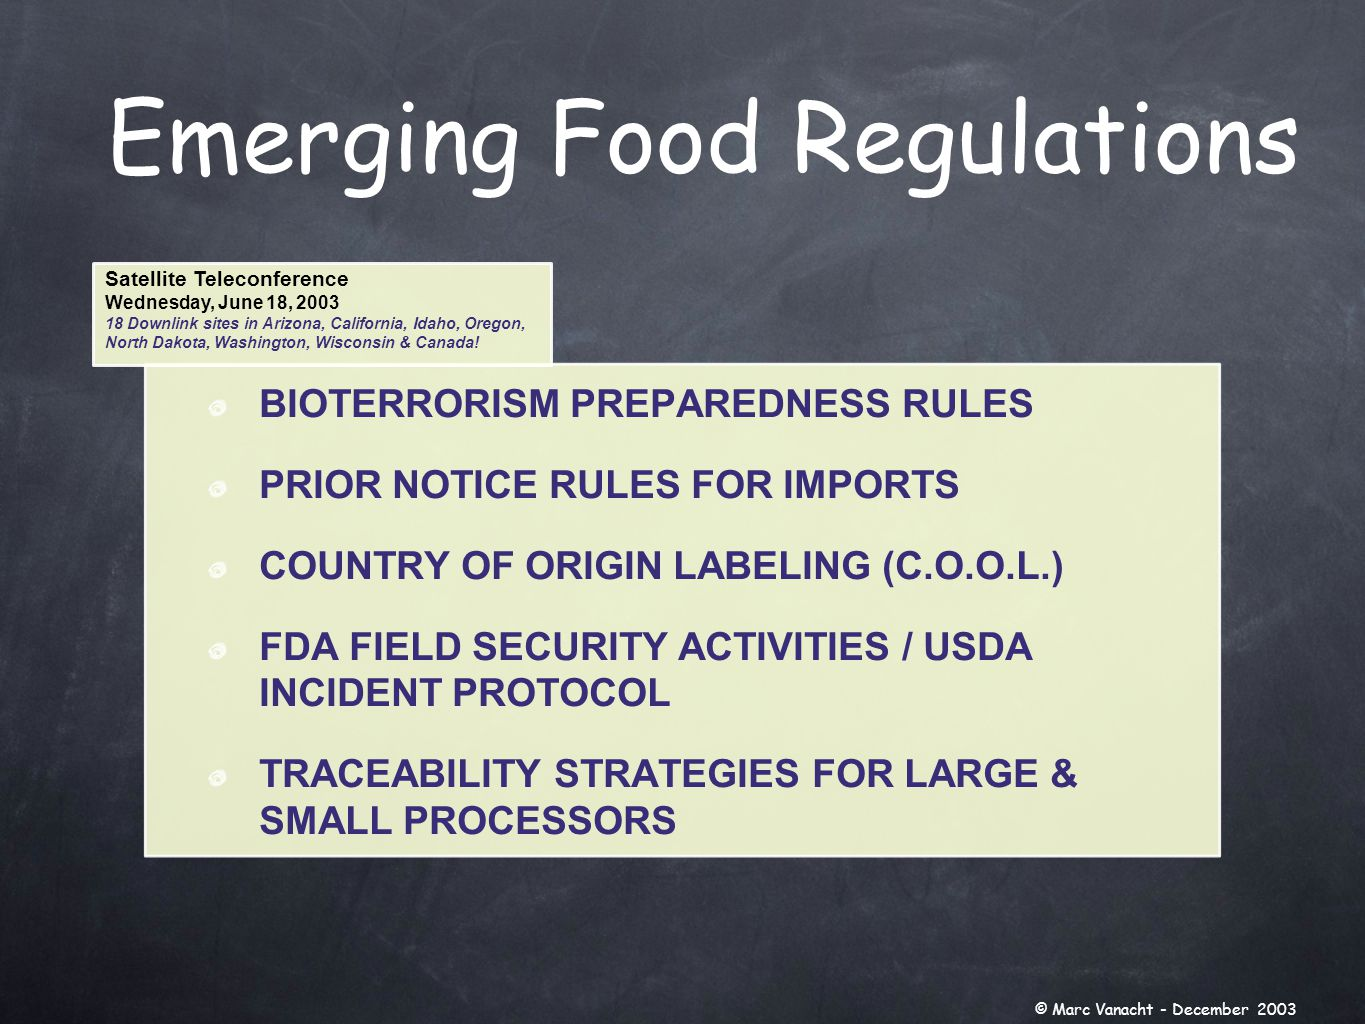 Emerging Food Regulations Satellite Teleconference Wednesday, June 18, 2003 18 Downlink sites in Arizona, California, Idaho, Oregon, North Dakota, Washington, Wisconsin & Canada.